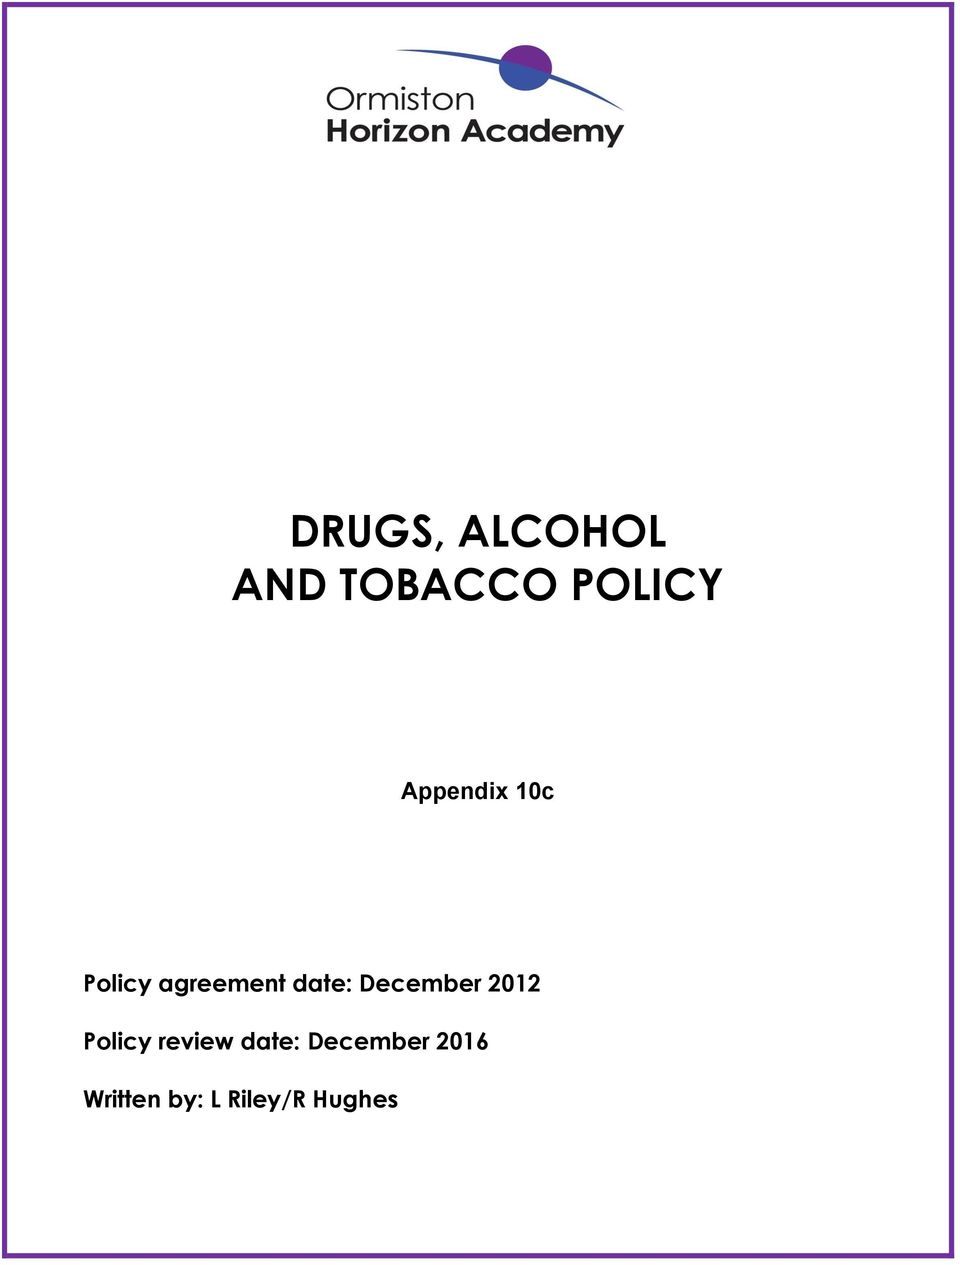 December 2012 Policy review date: